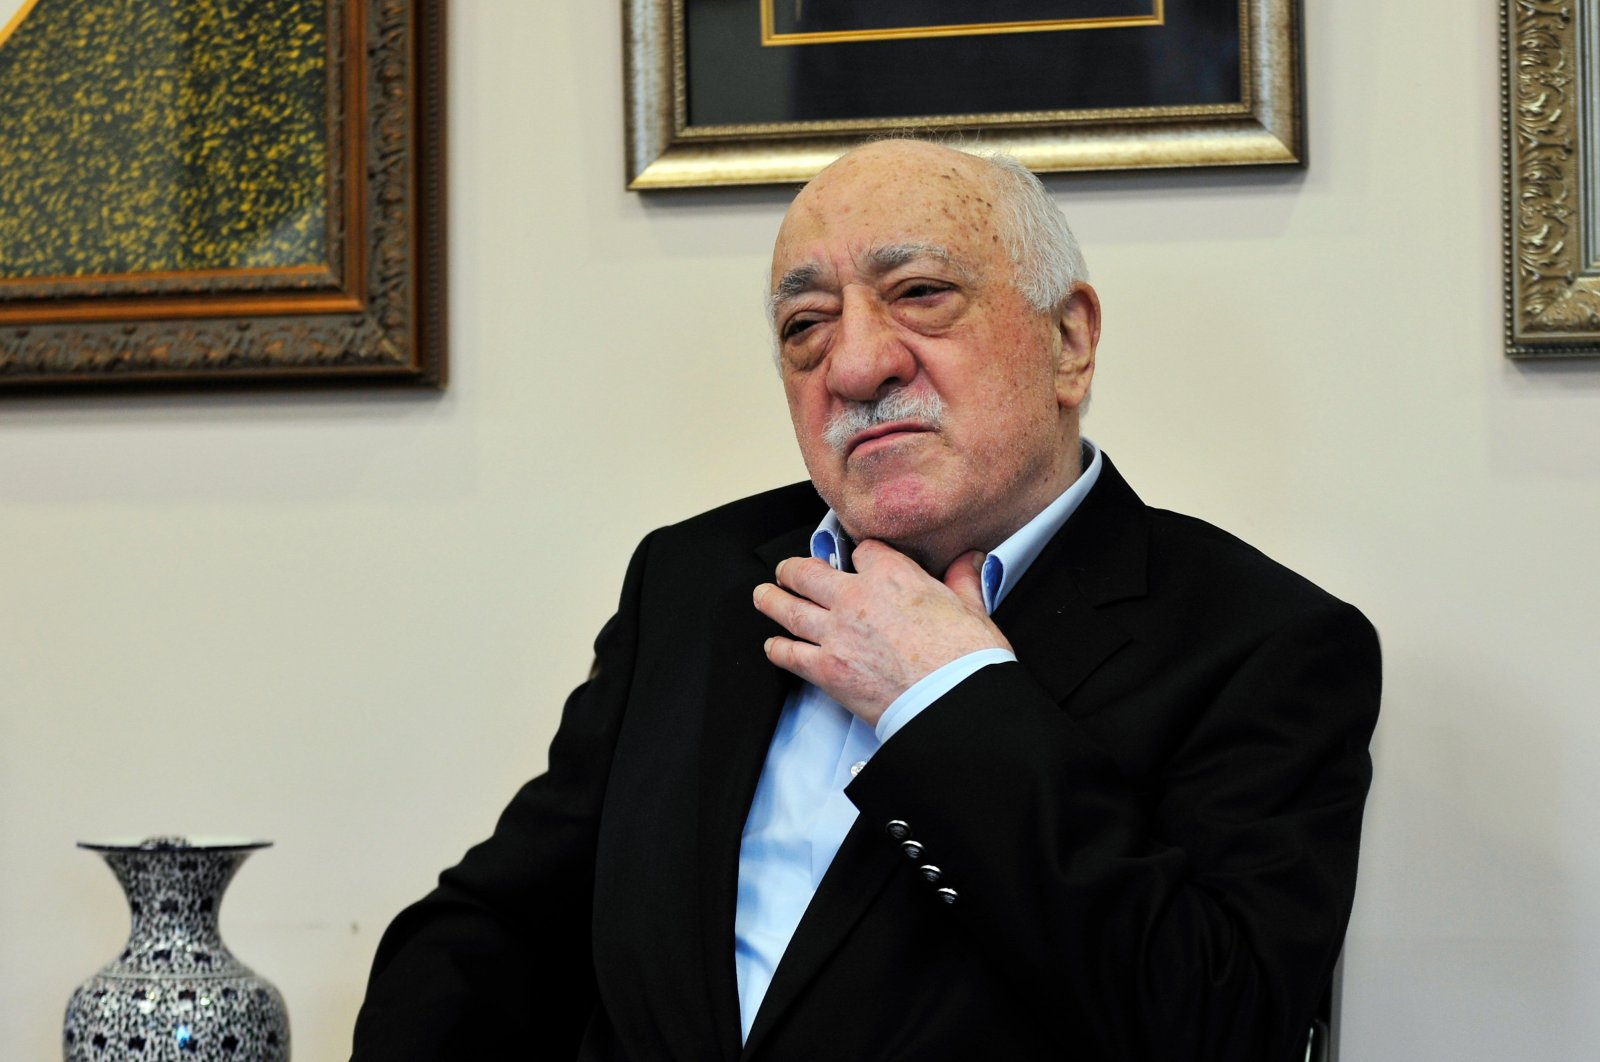 FETÖ leader Fetullah Gülen poses in his compound in Pennsylvania, United States, July 17, 2016. (AP Photo)